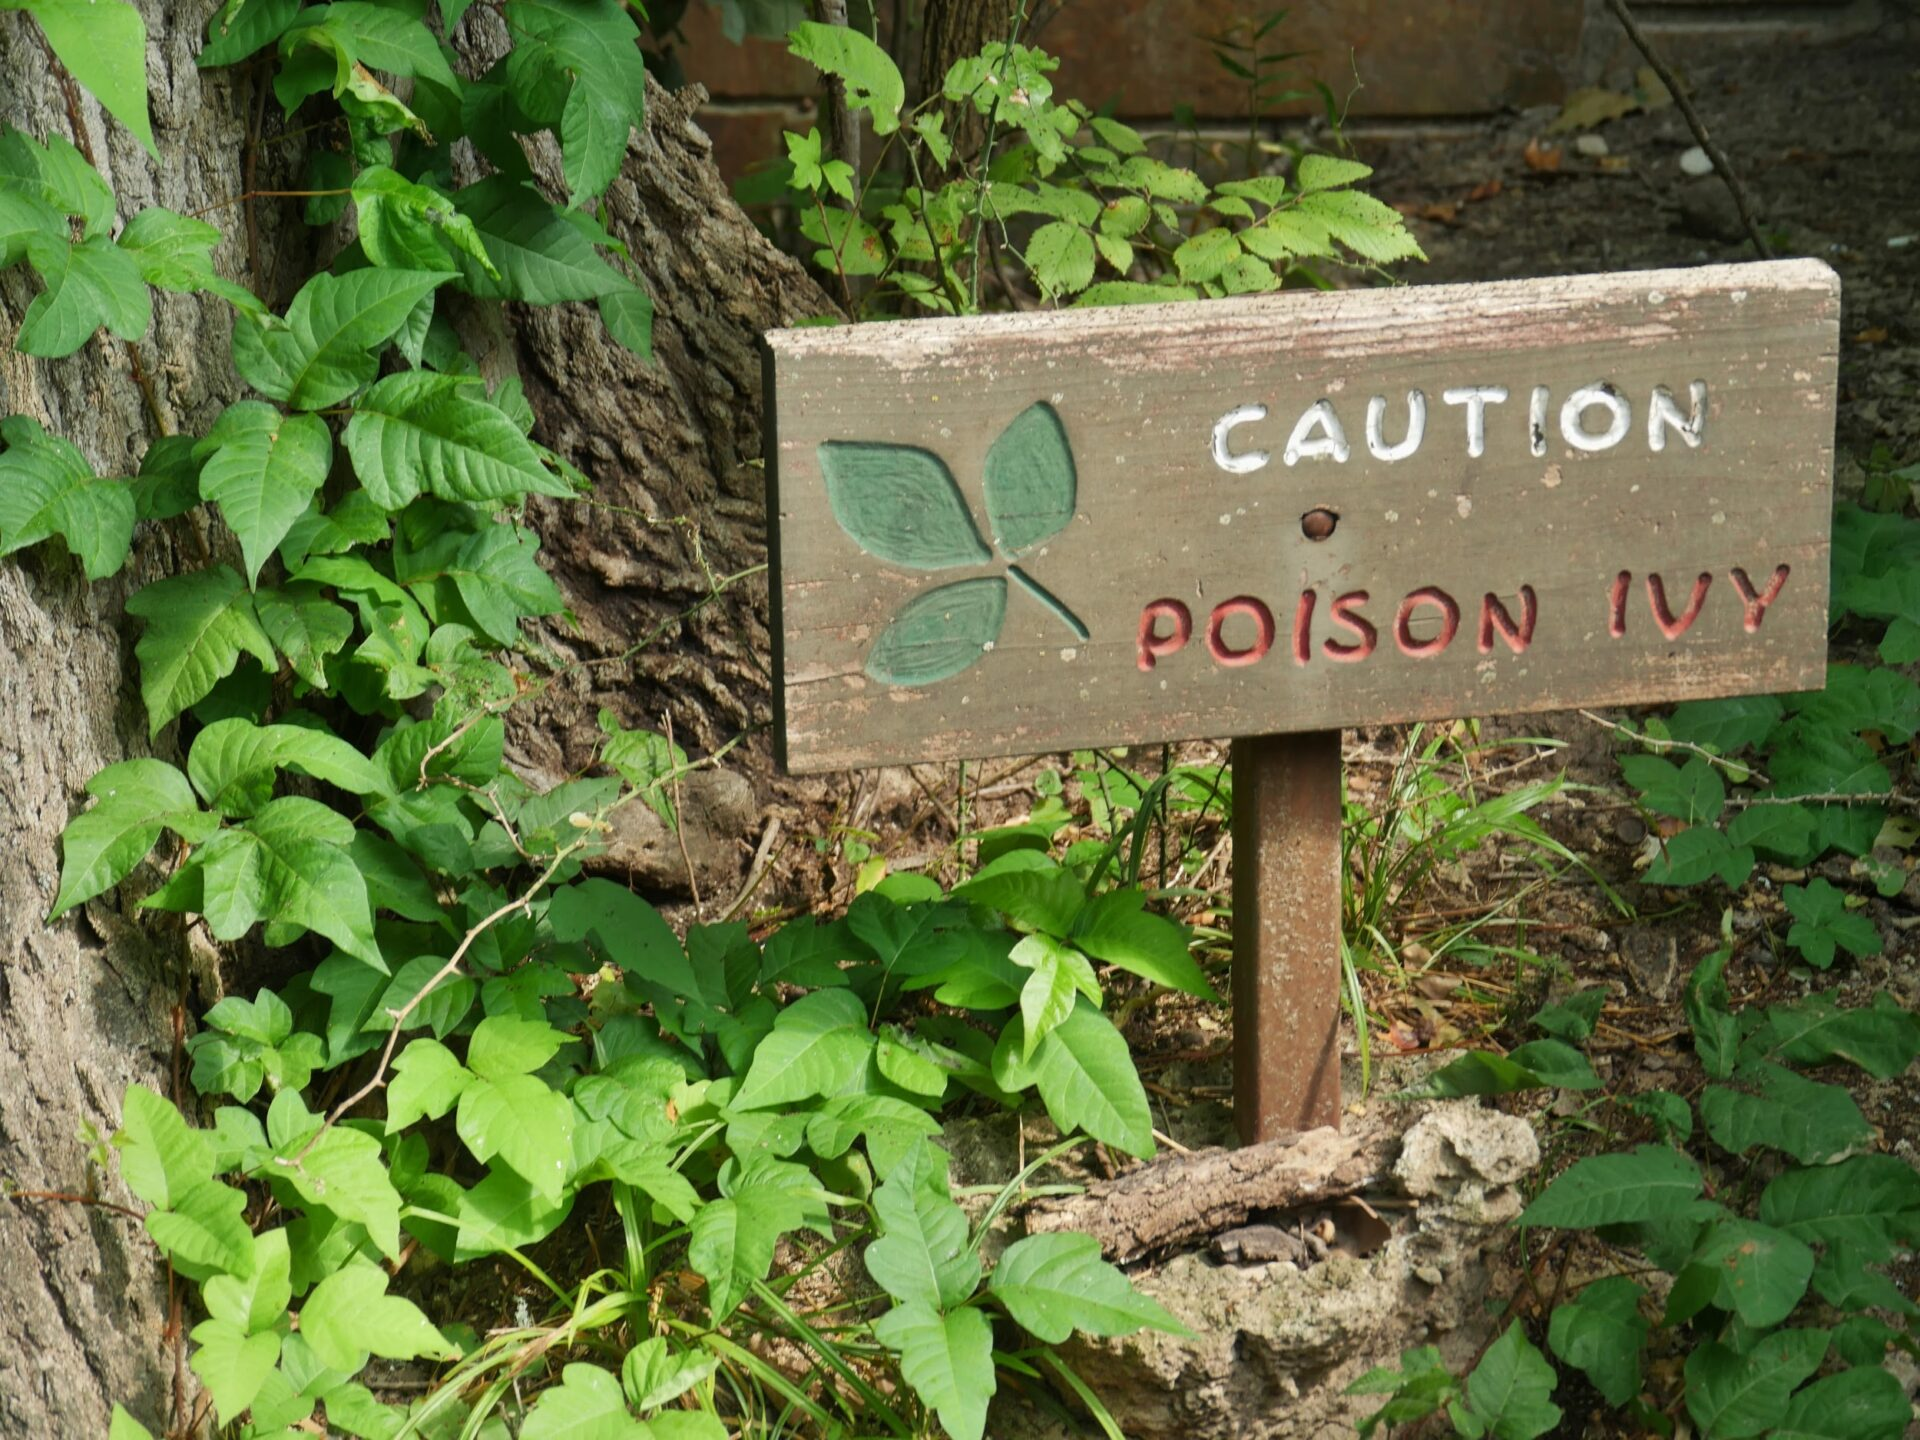 Poison ivy in a wooded area.